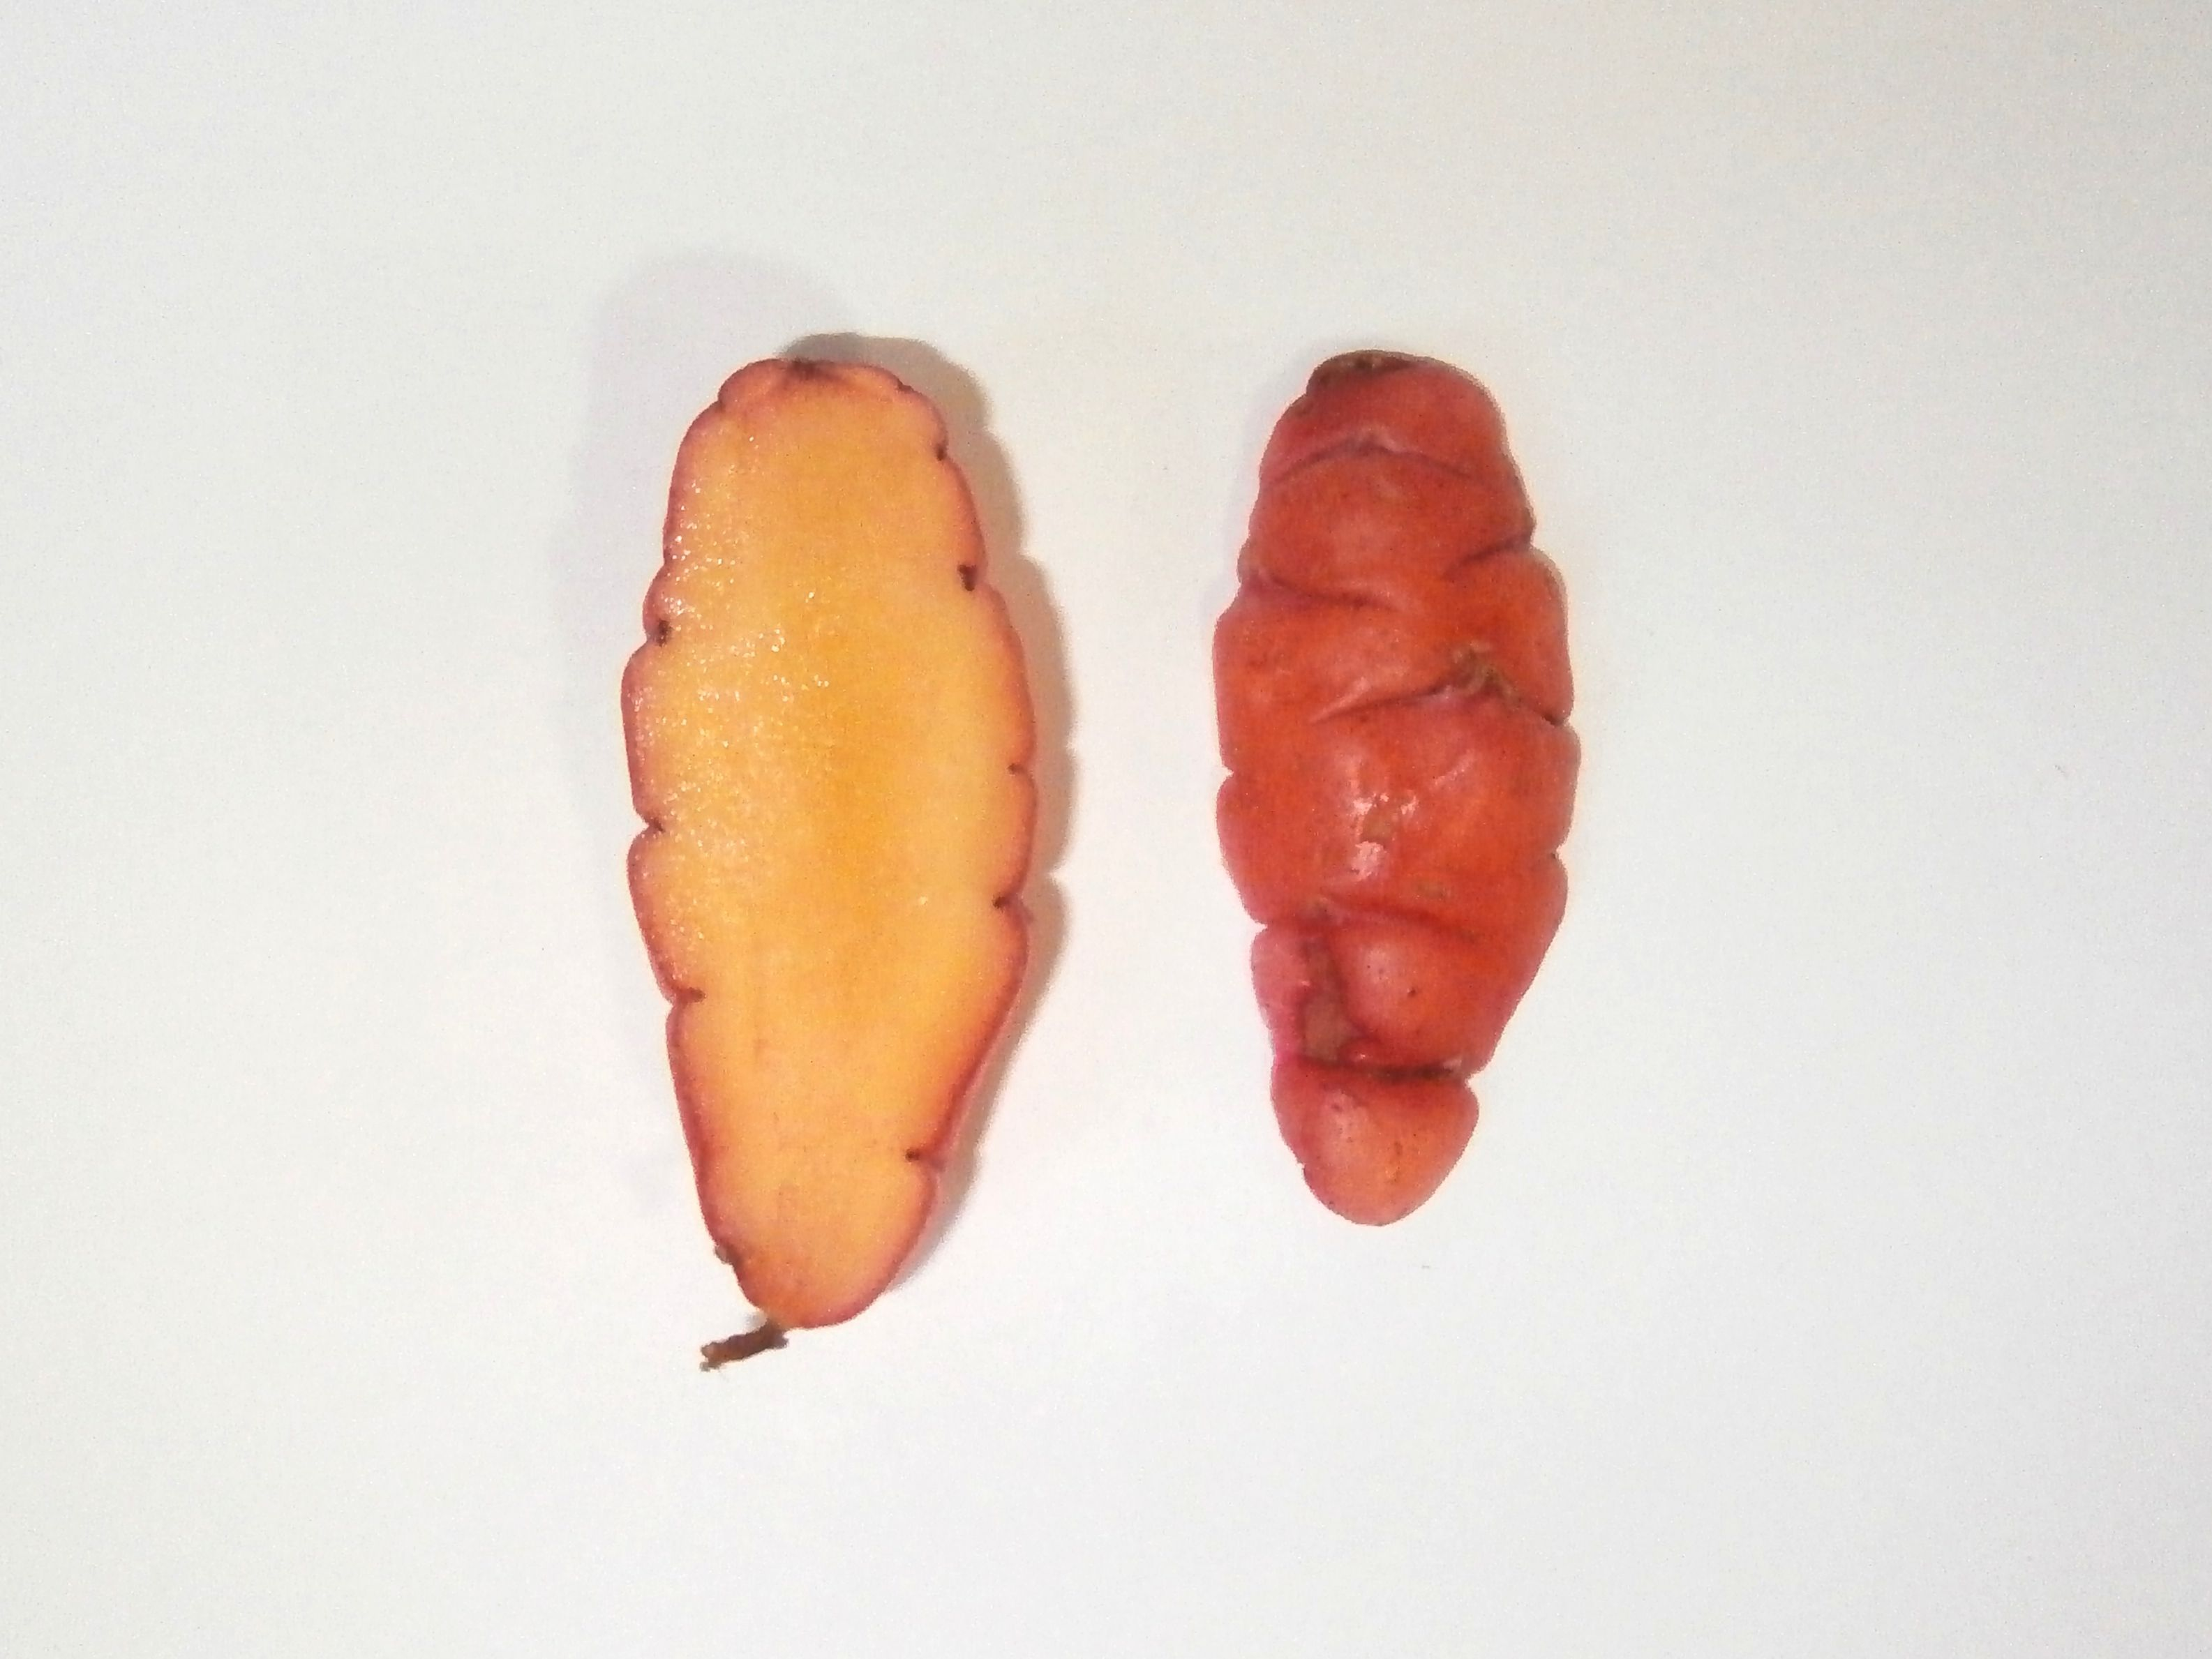 Sunset oca tuber interior